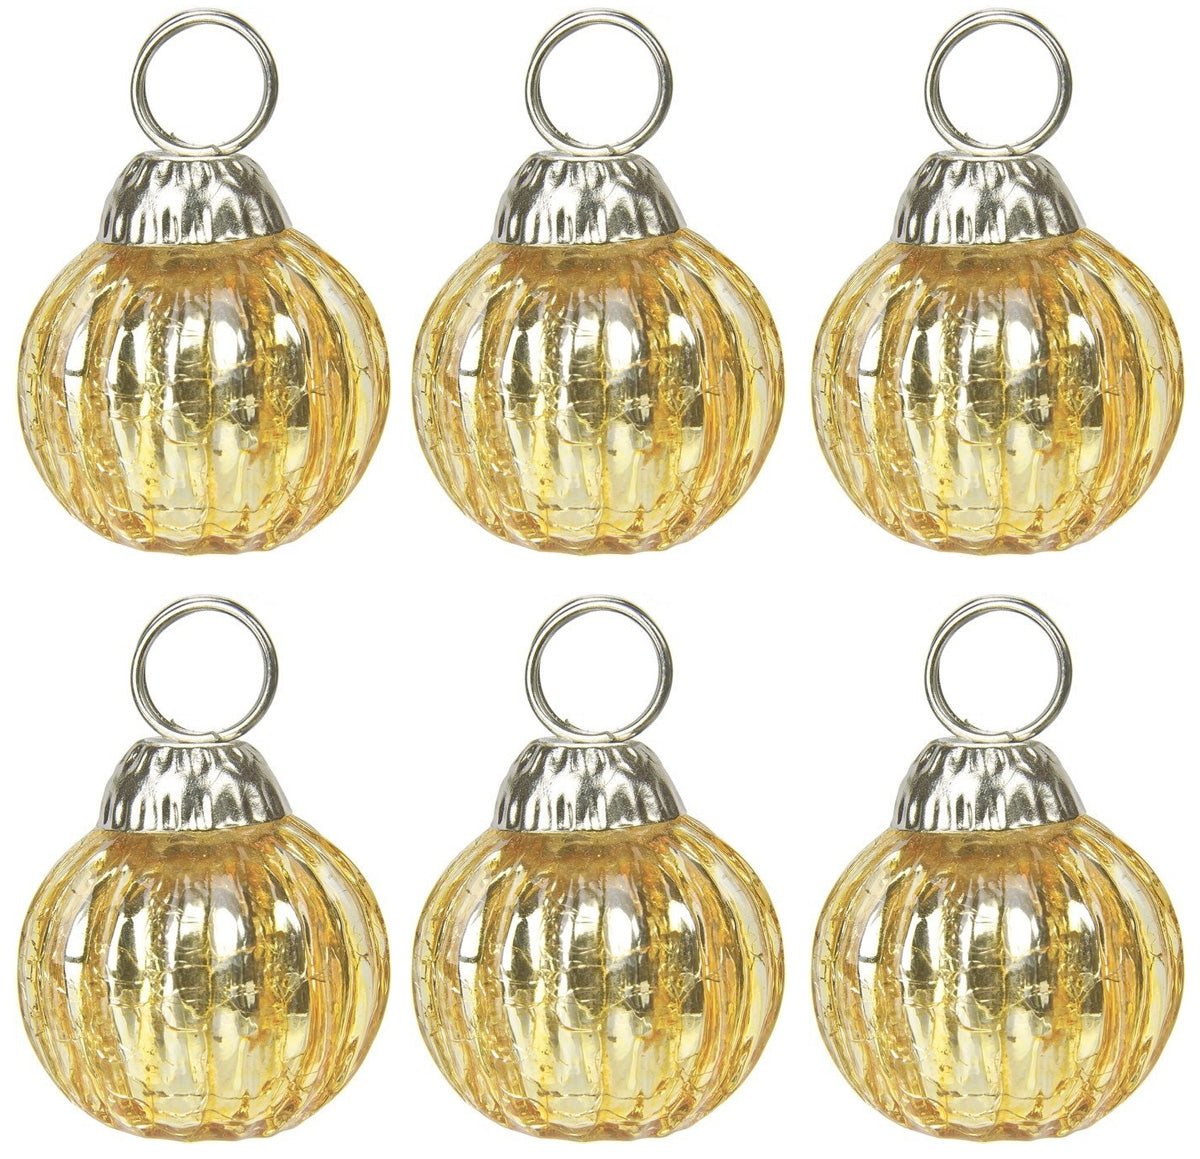 6 Pack | Mini Glass Bauble Place Card Holder (1.25-Inch, Gold, Set of 6) - For Home Decor and Wedding Tabletops - PaperLanternStore.com - Paper Lanterns, Decor, Party Lights & More